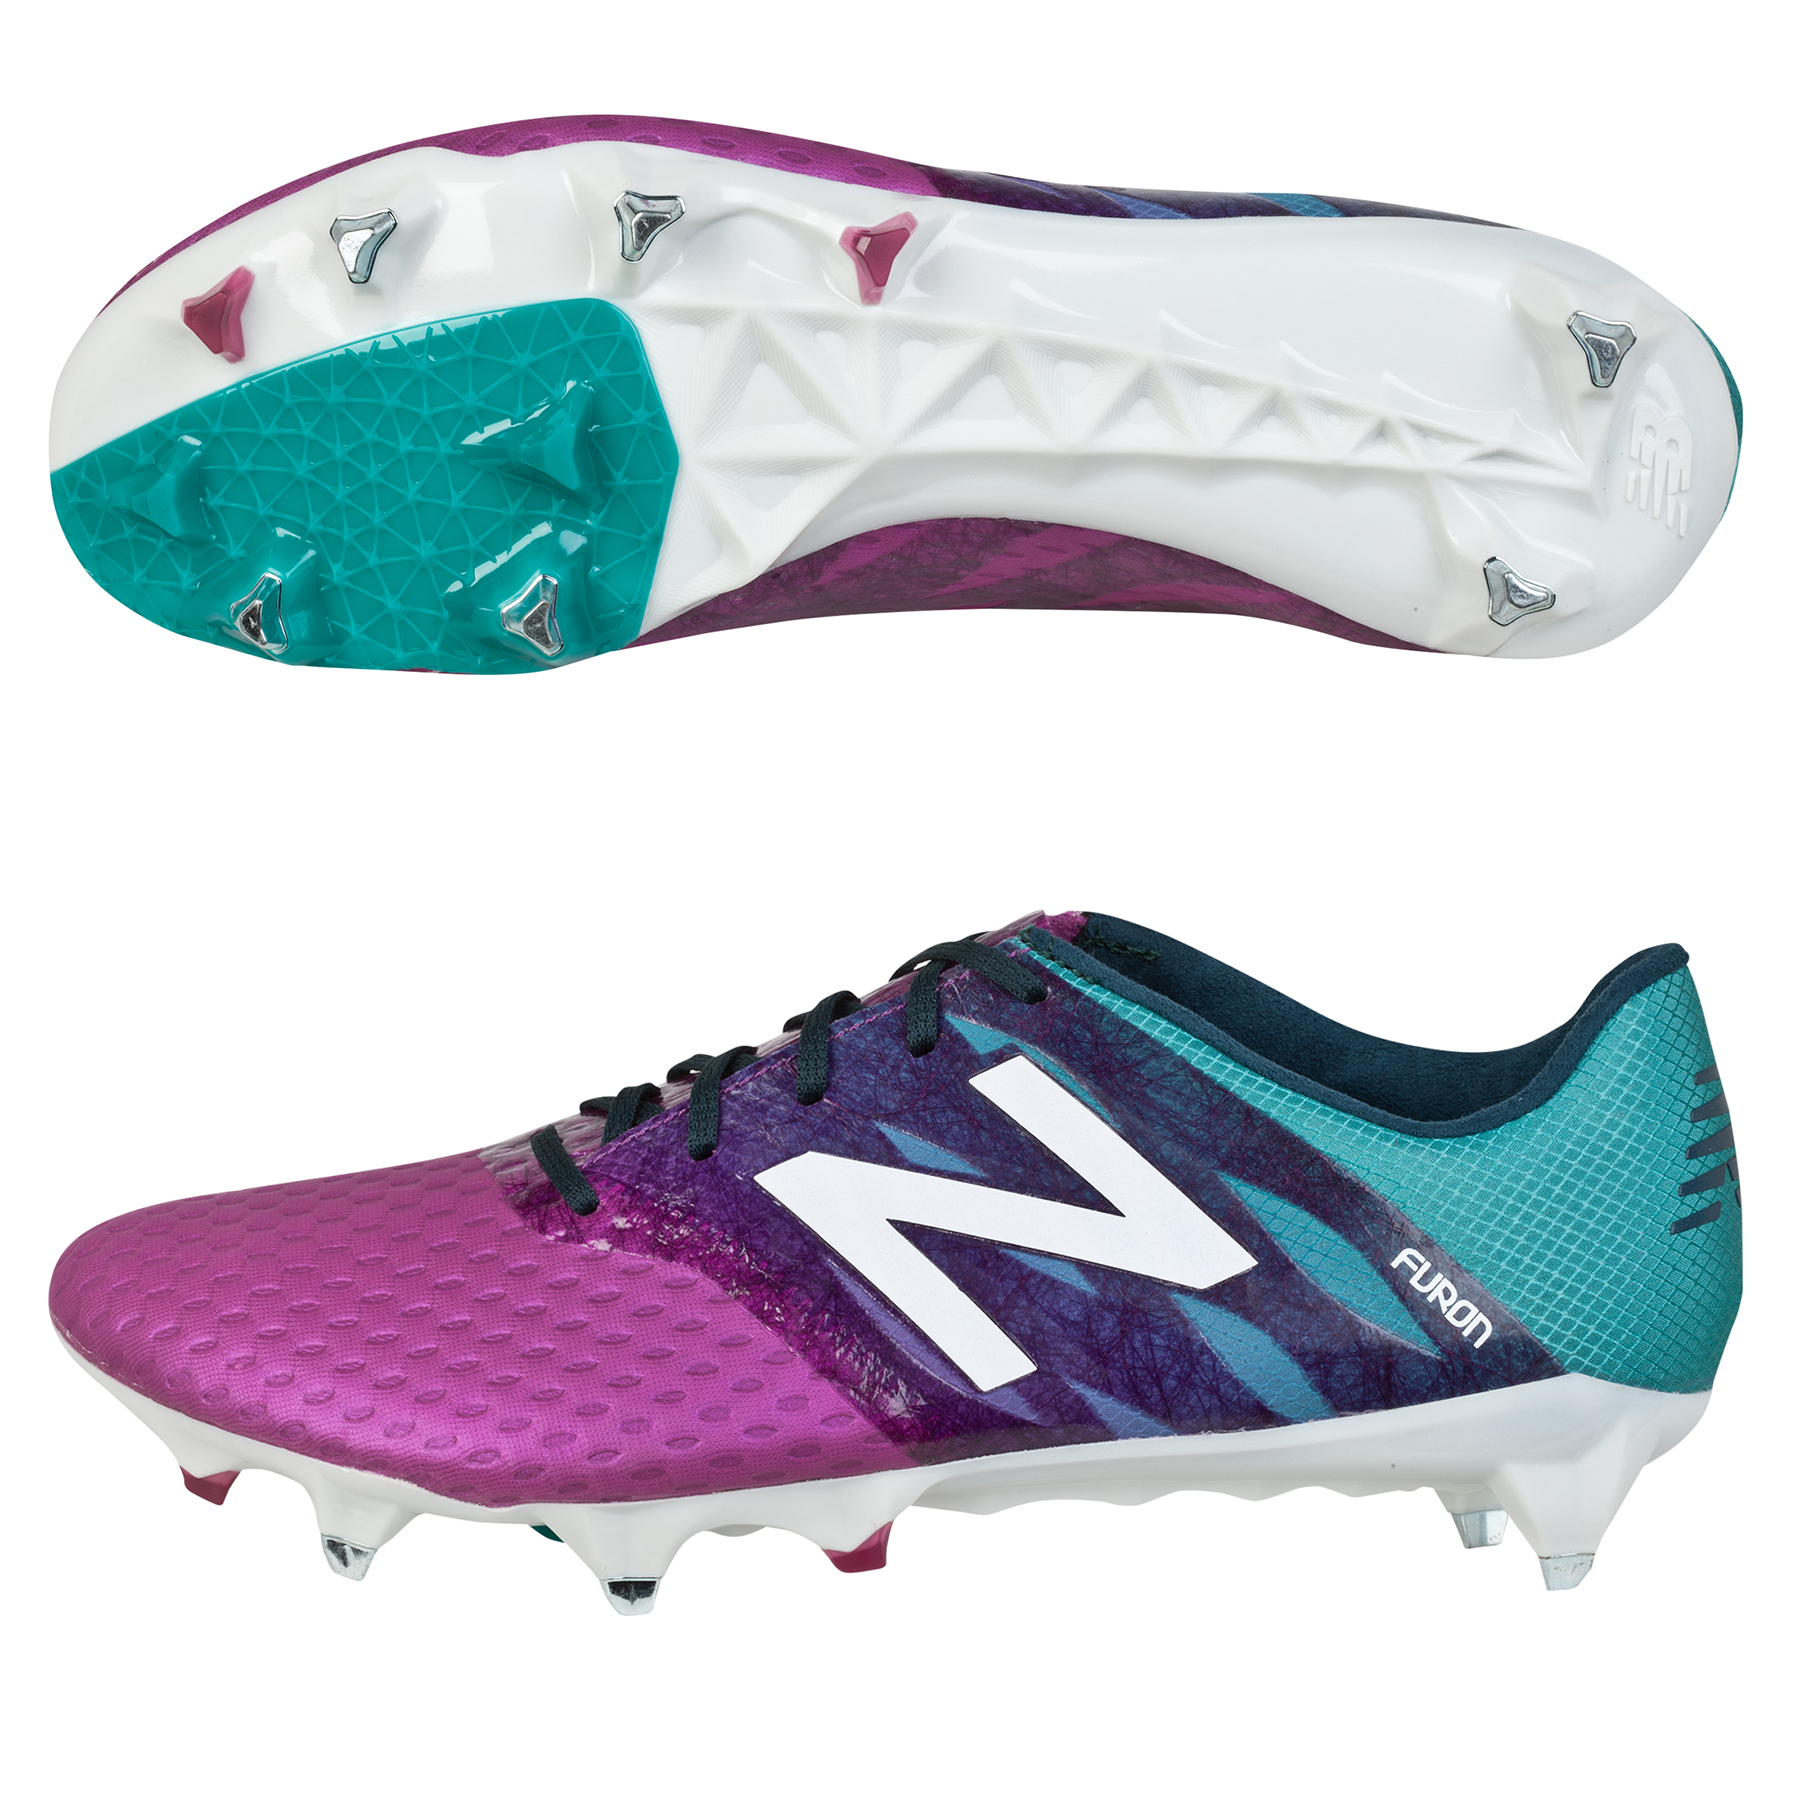 New Balance Furon Pro Soft Ground Football Boots Purple